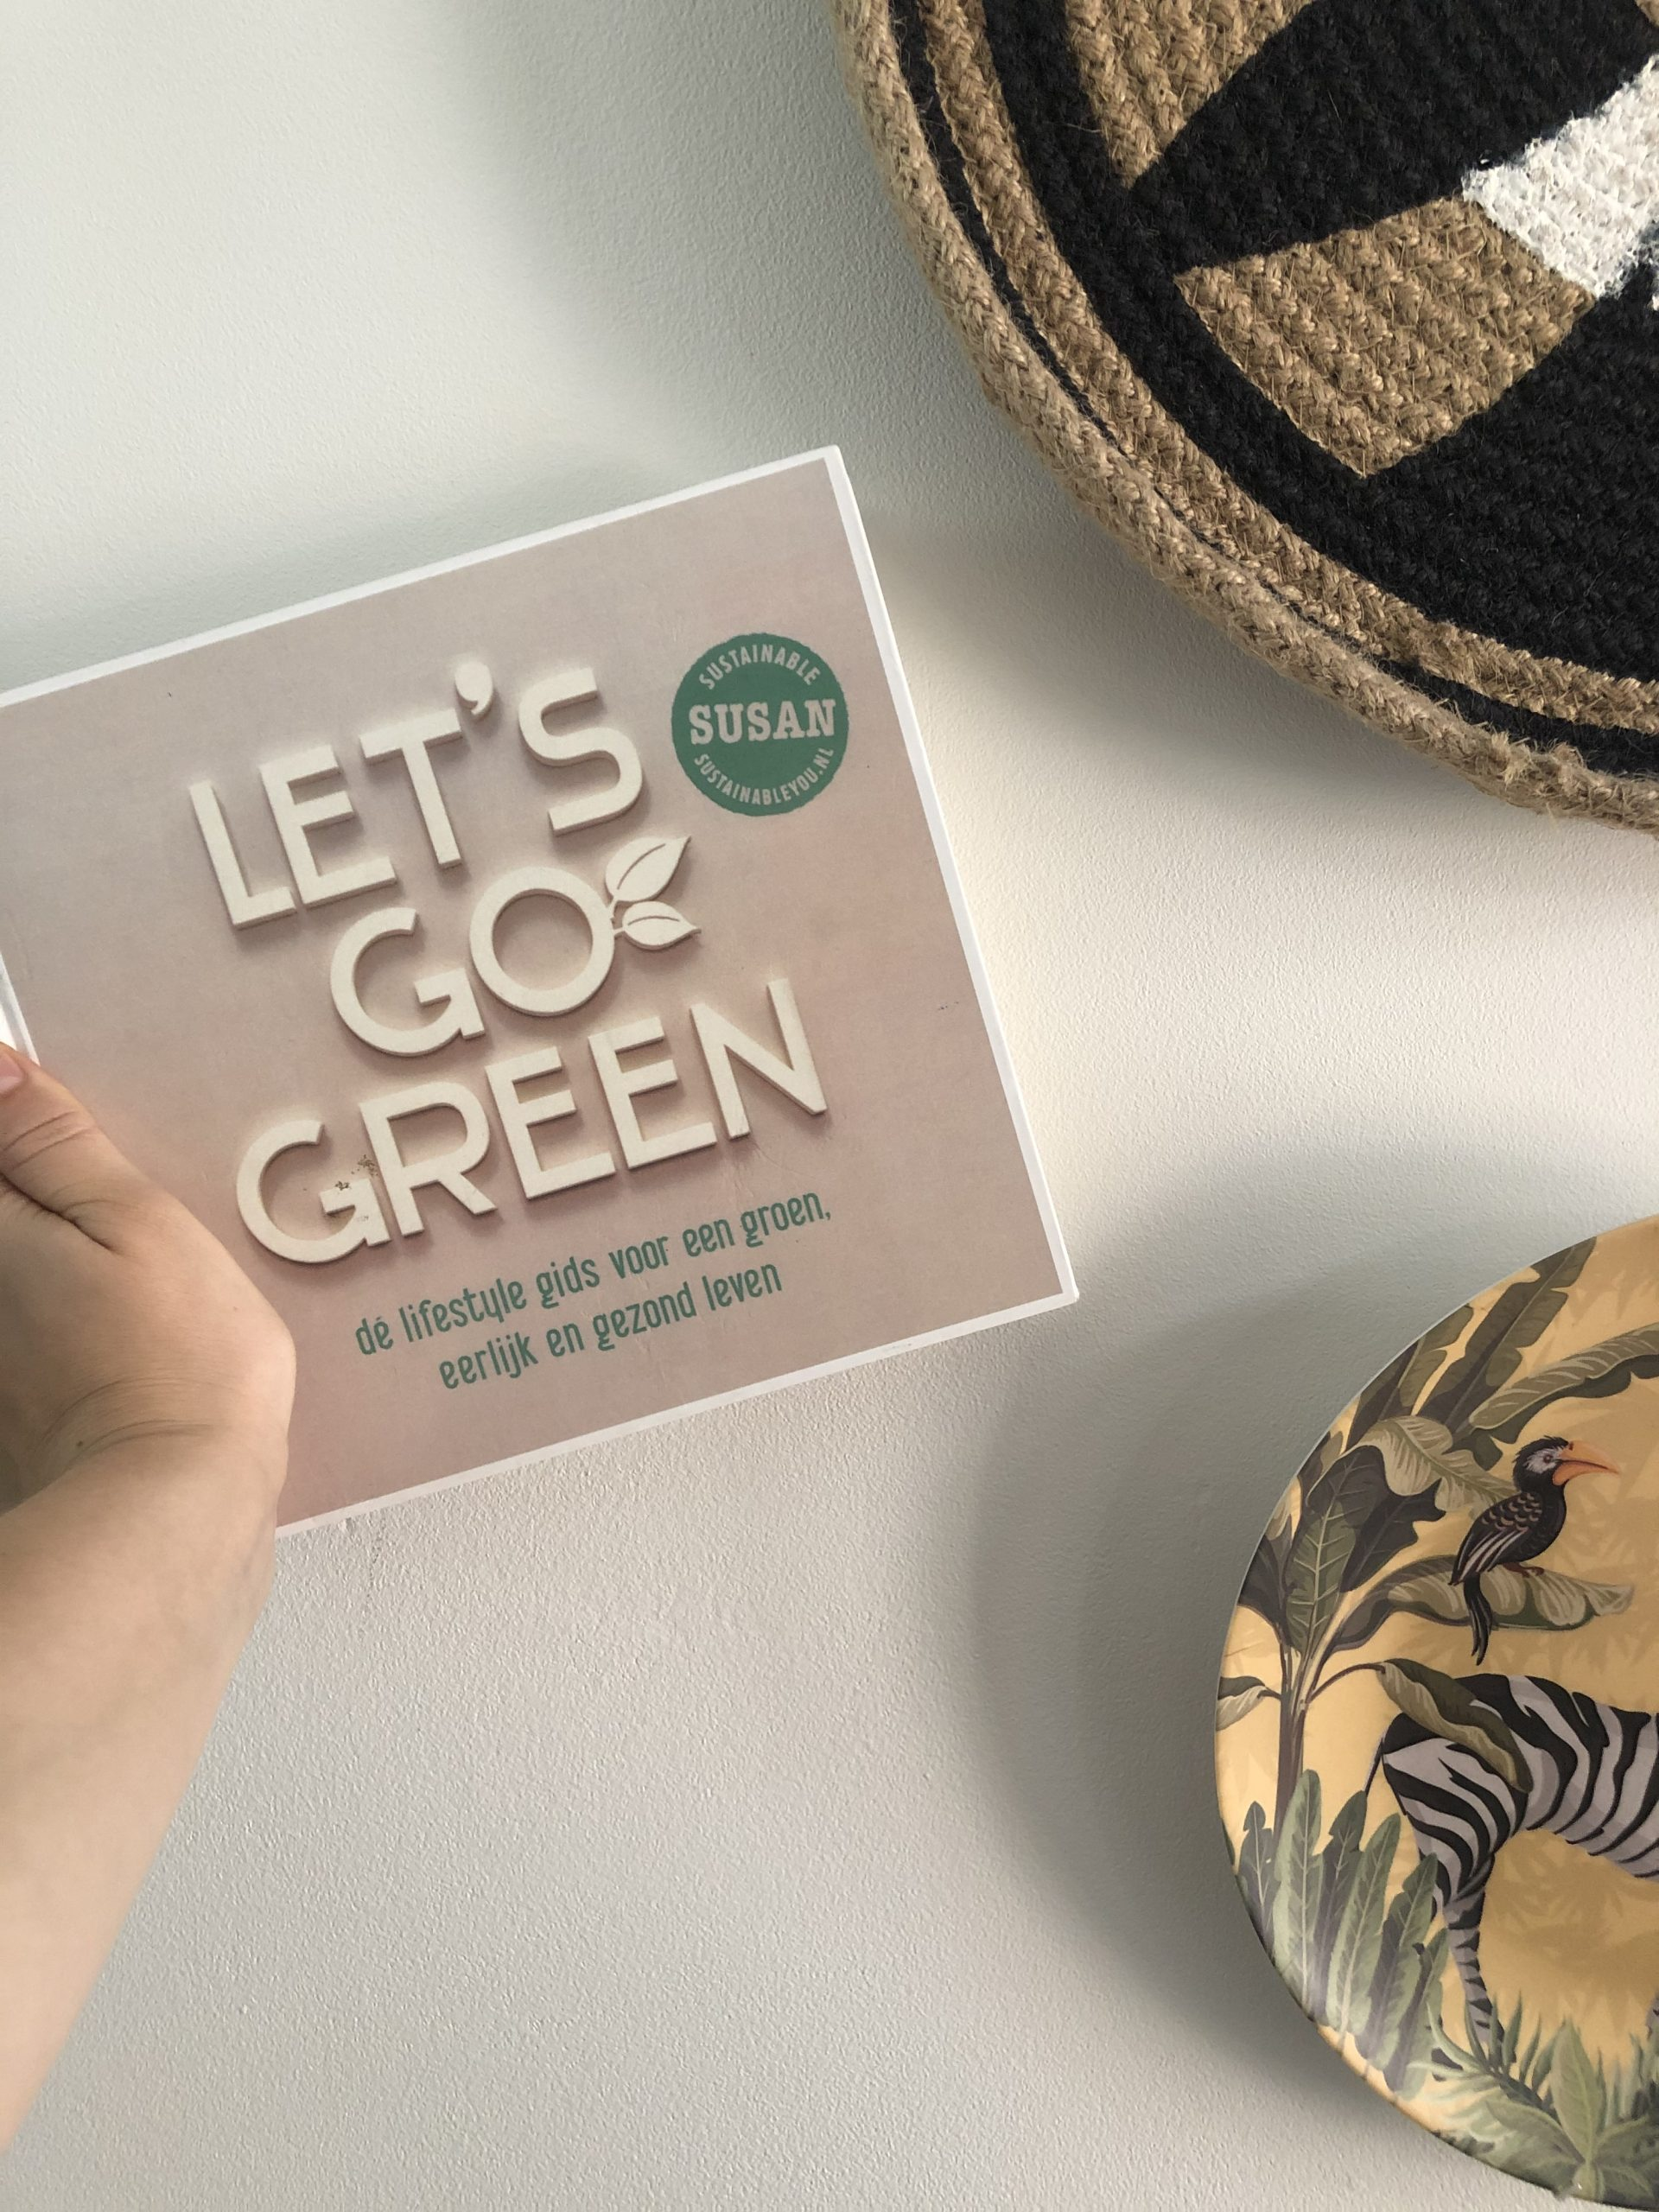 Book about a sustainable lifestyle: Let's Go Green